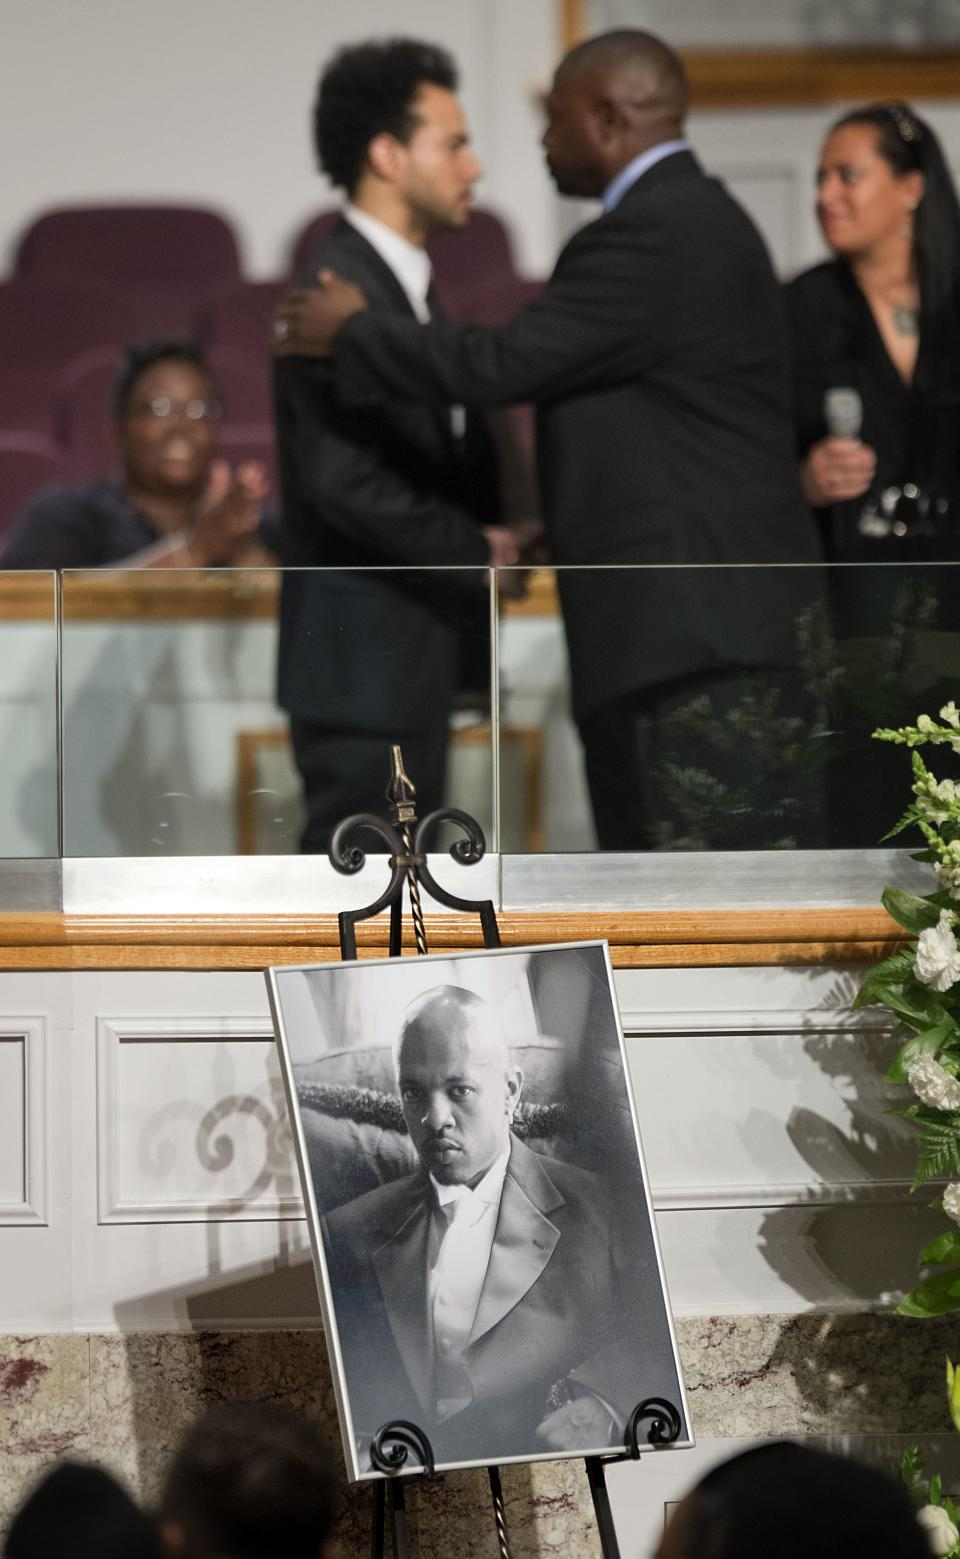 A photo of Chris Kelly of the rap duo Kris Kross is displayed as fellow Kris Kross member Chris Smith, top left, is comforted during his funeral service, Thursday, May 9, 2013, in Atlanta. The 34-year-old Kelly was found dead May 1 of a suspected drug overdose.  (AP Photo/David Goldman)